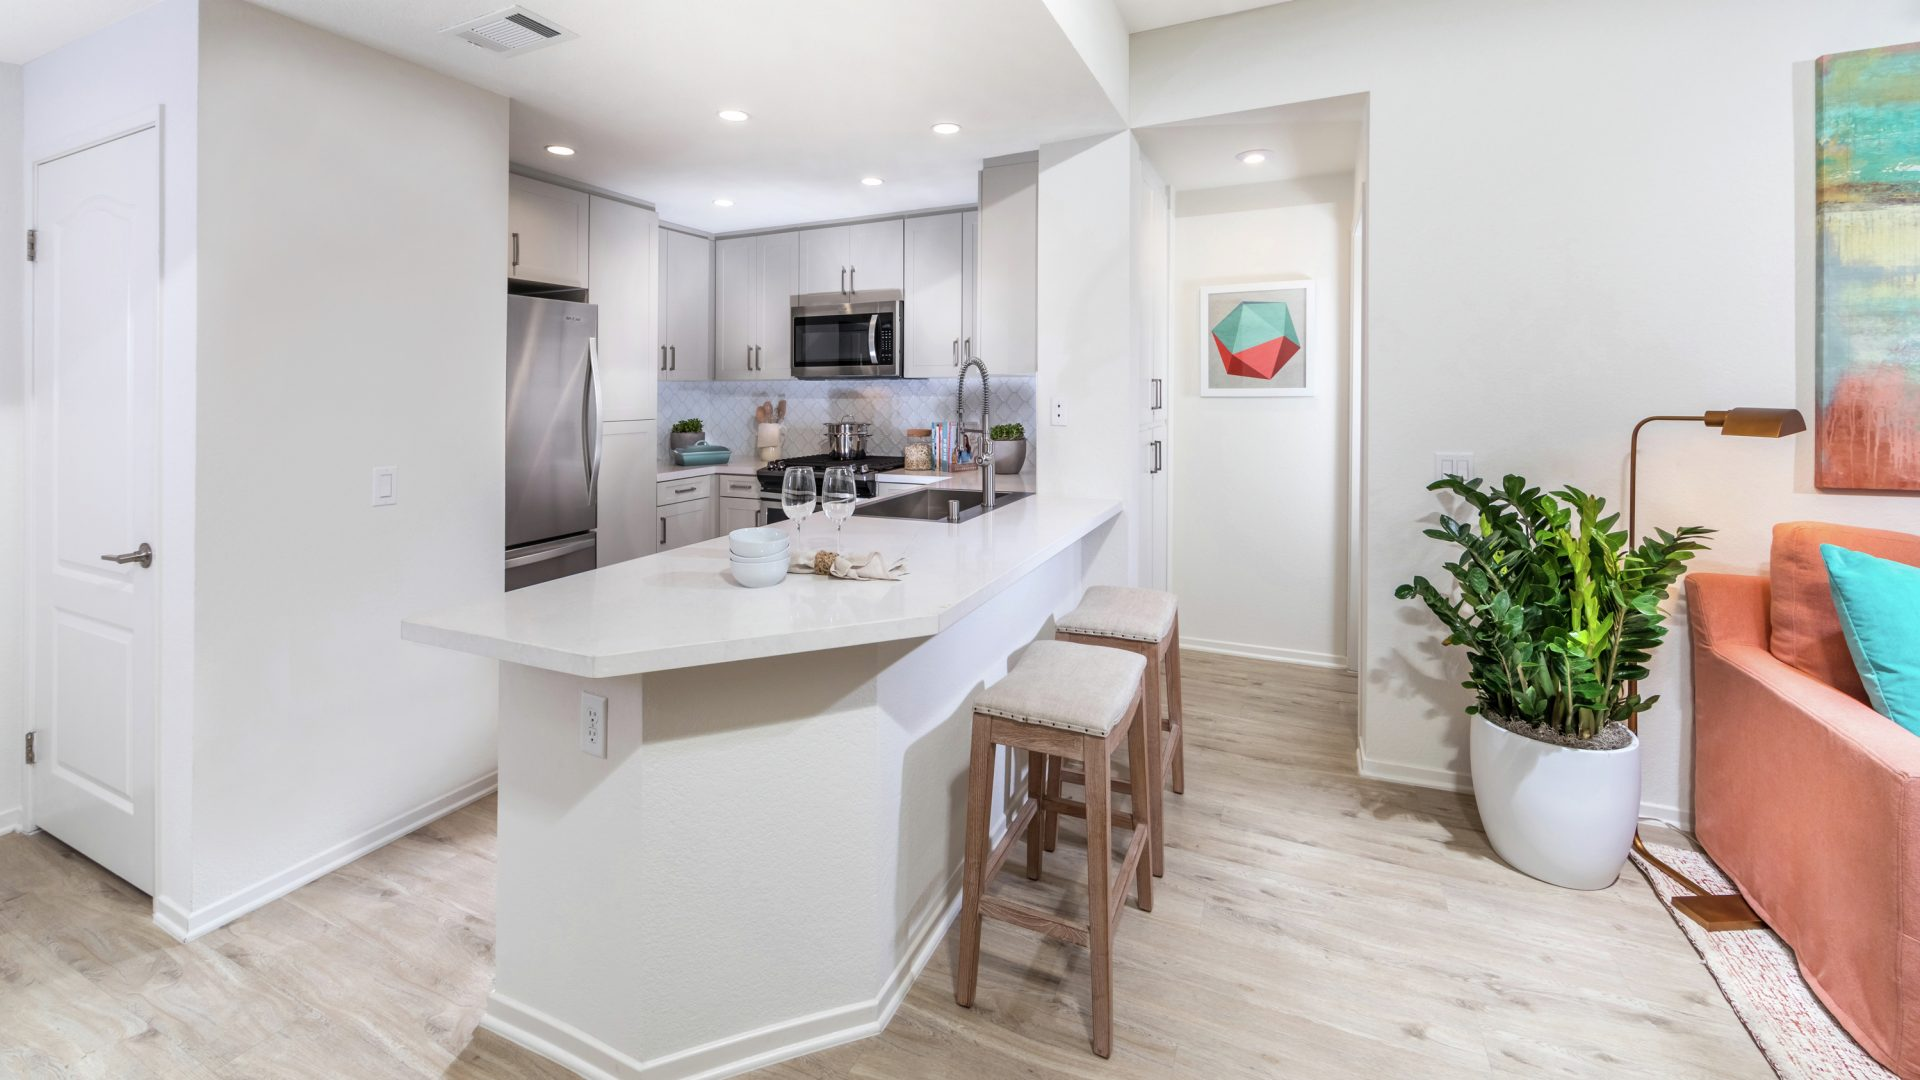 Interior view of kitchen at Newport Ridge Apartment Homes in Newport Beach, CA.